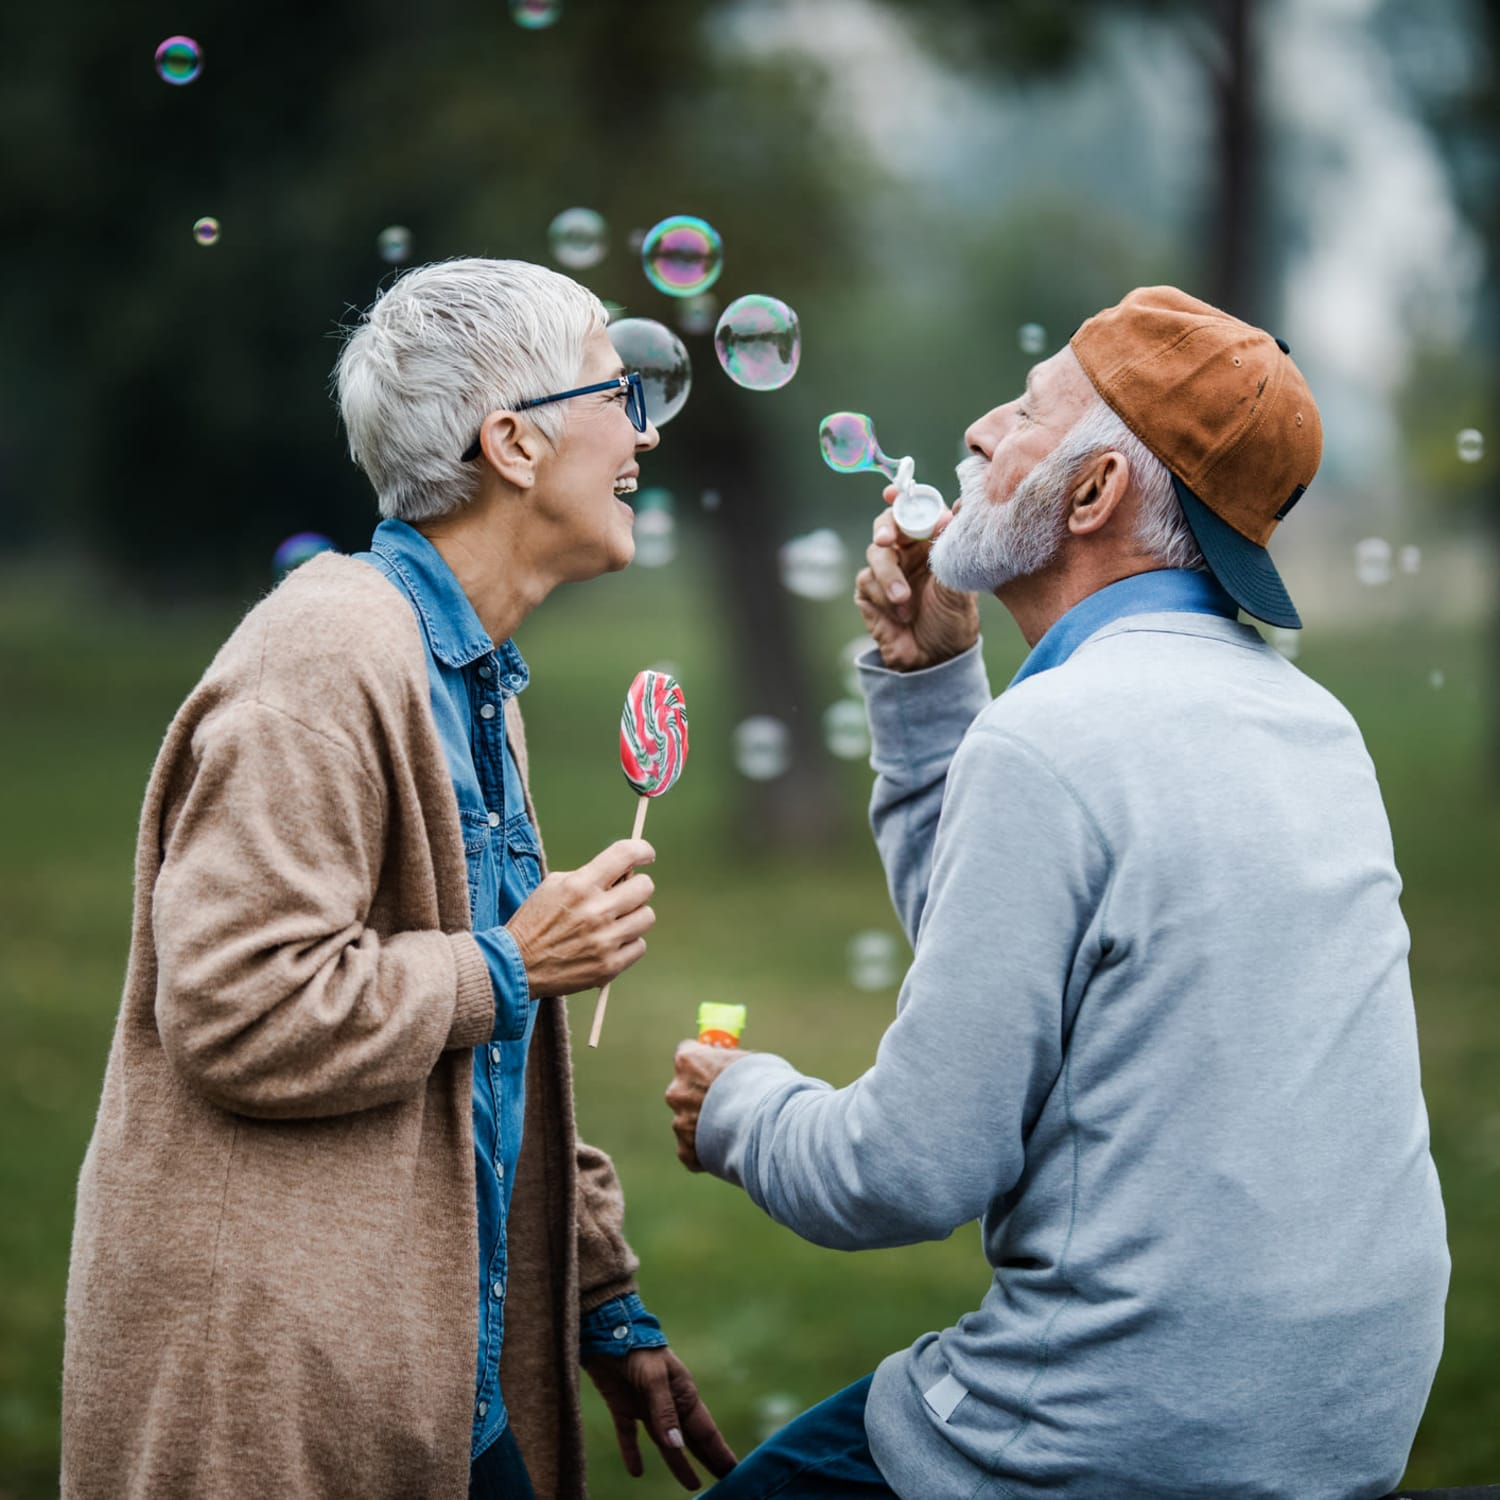 Couple blowing bubbles at Farmington Square Tualatin in Tualatin, Oregon